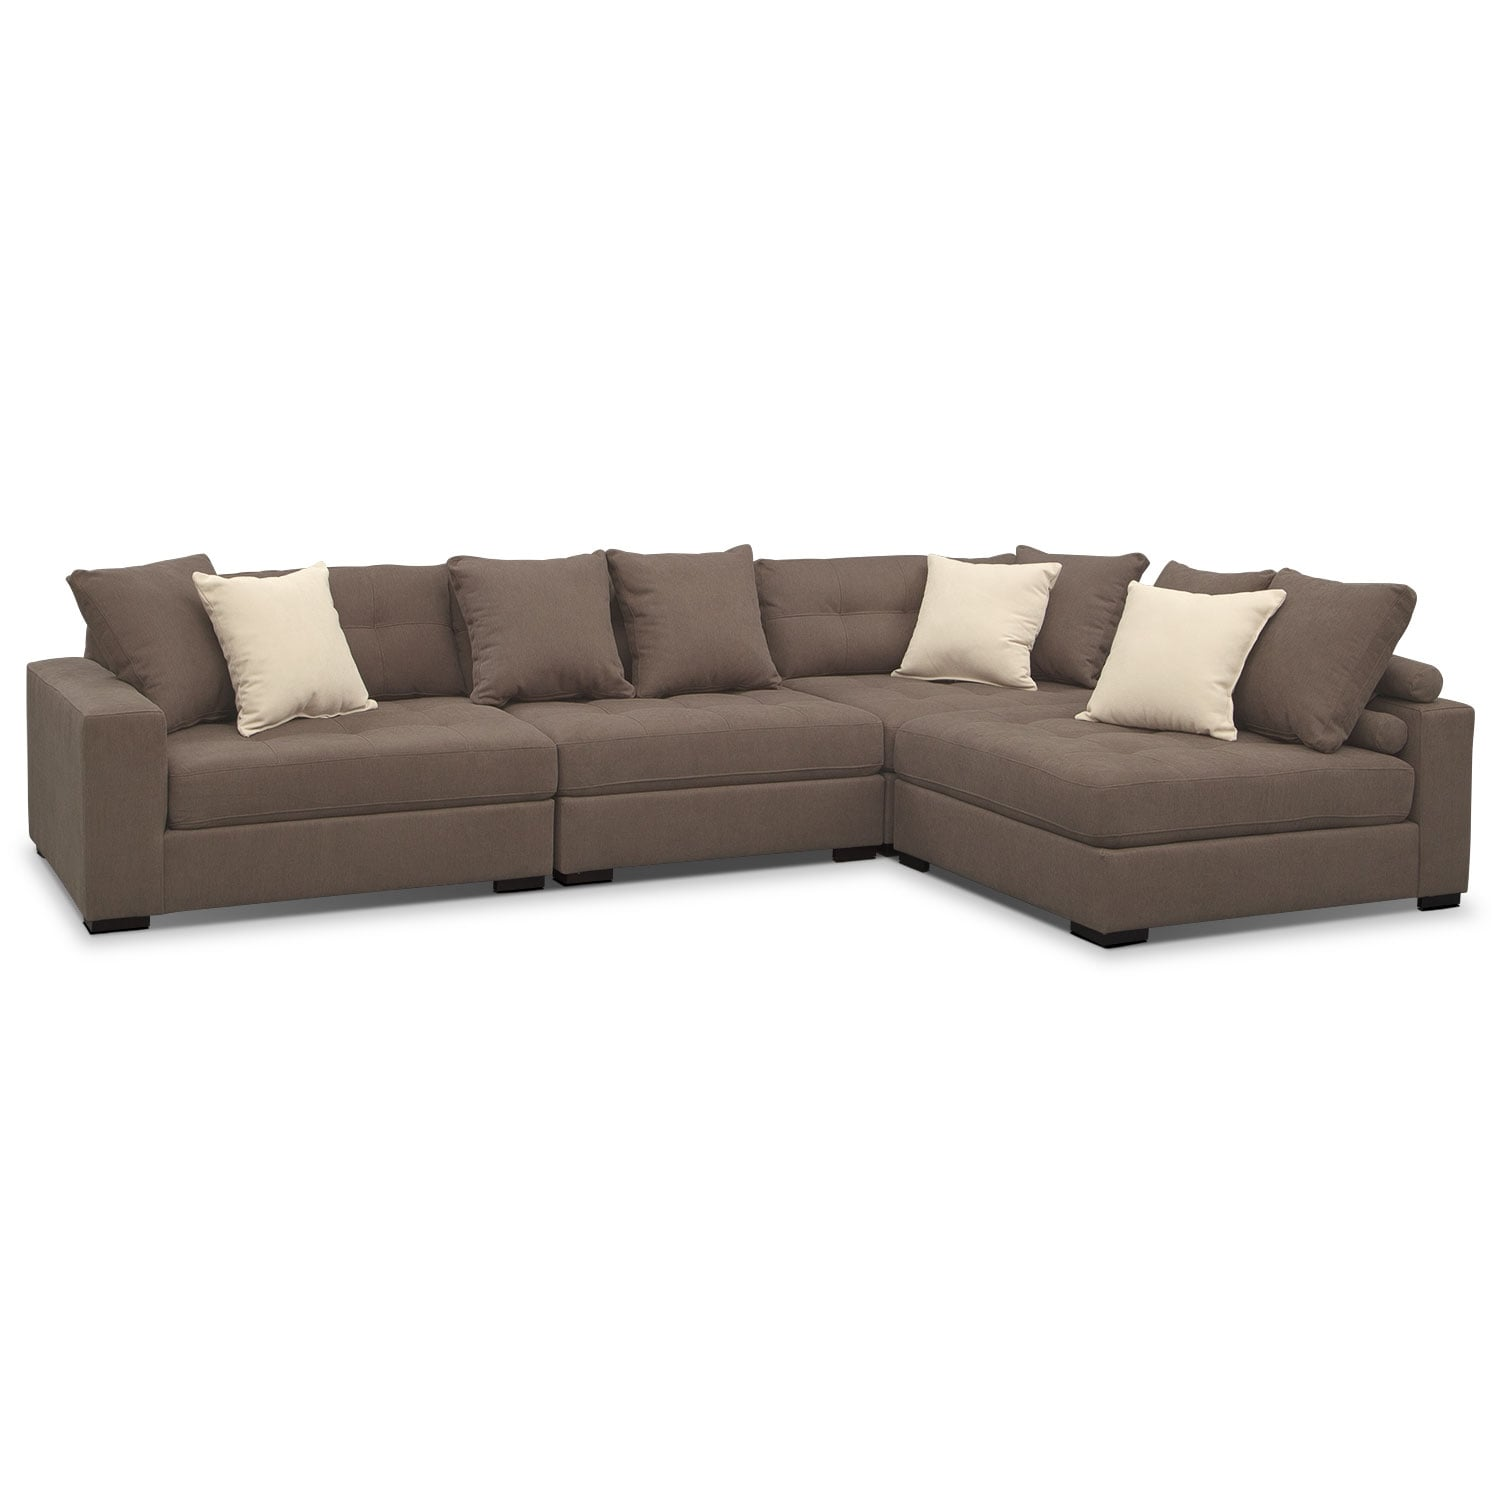 Living Room Furniture - Venti 4-Piece Sectional - Mocha